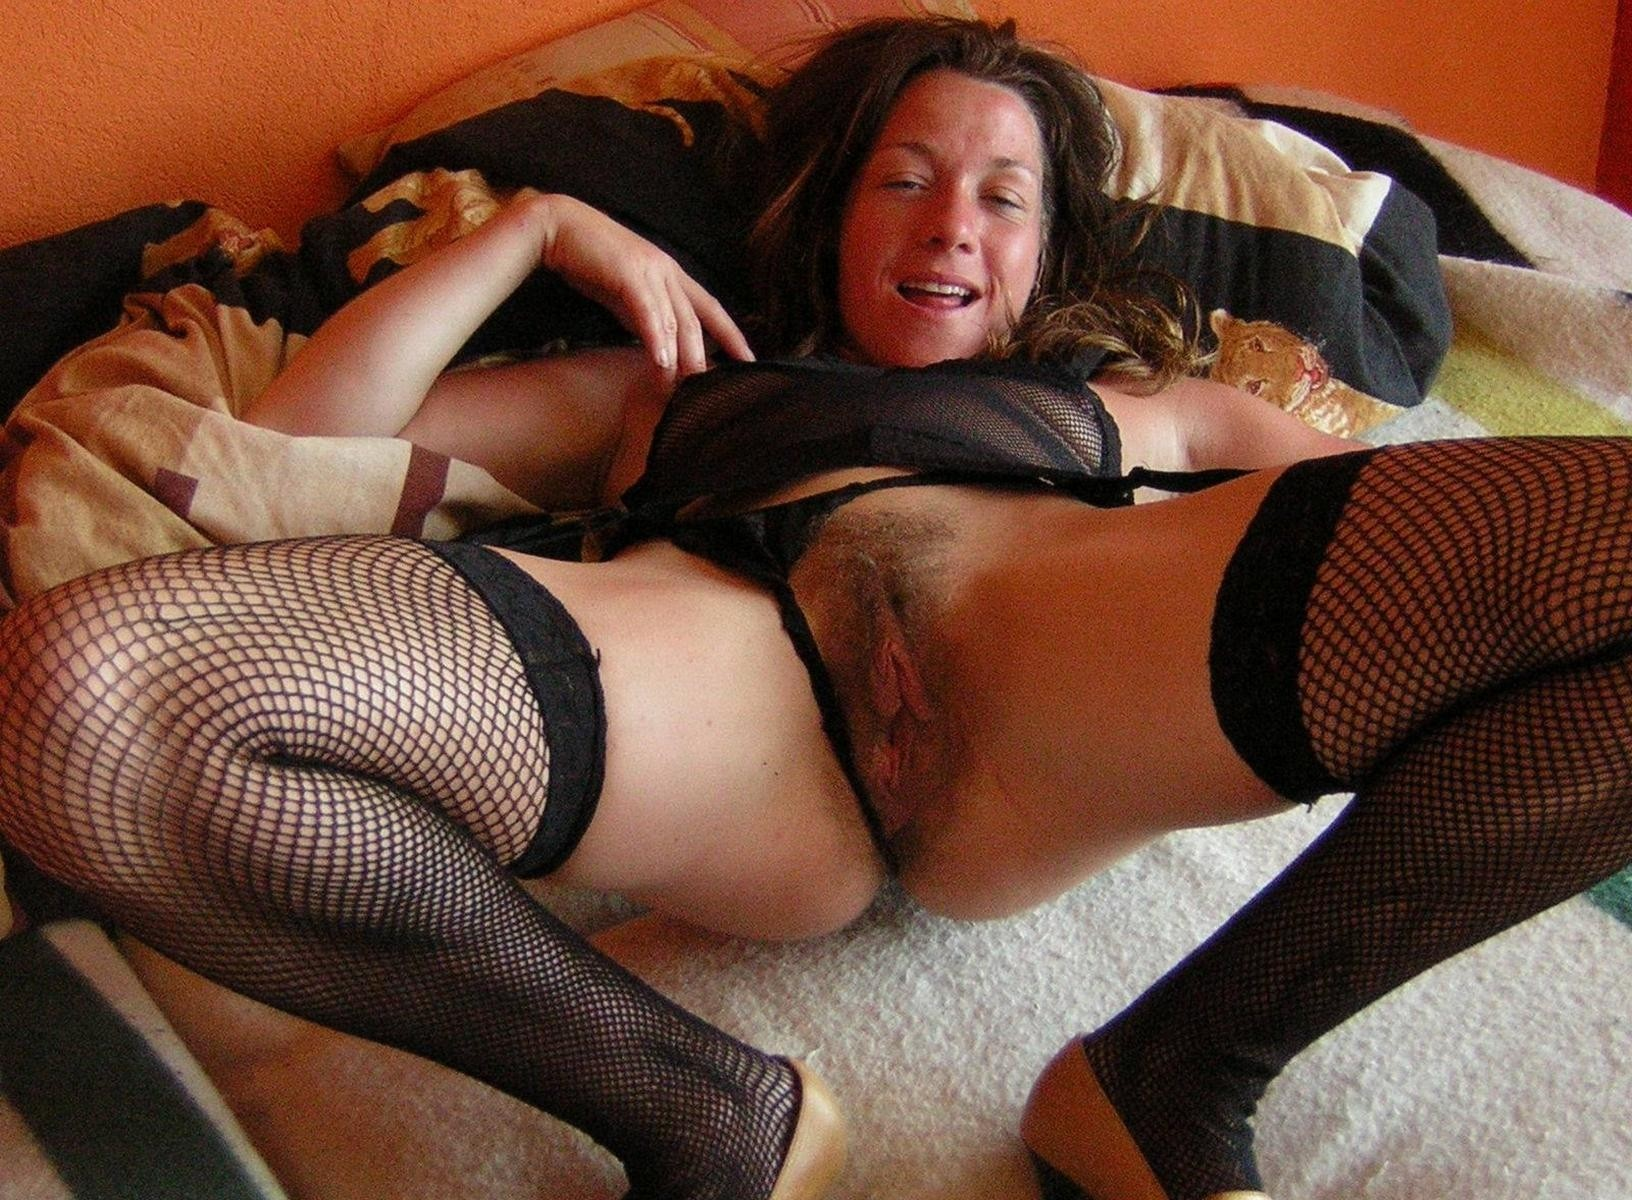 Hairy mature wife spreading wide in bed